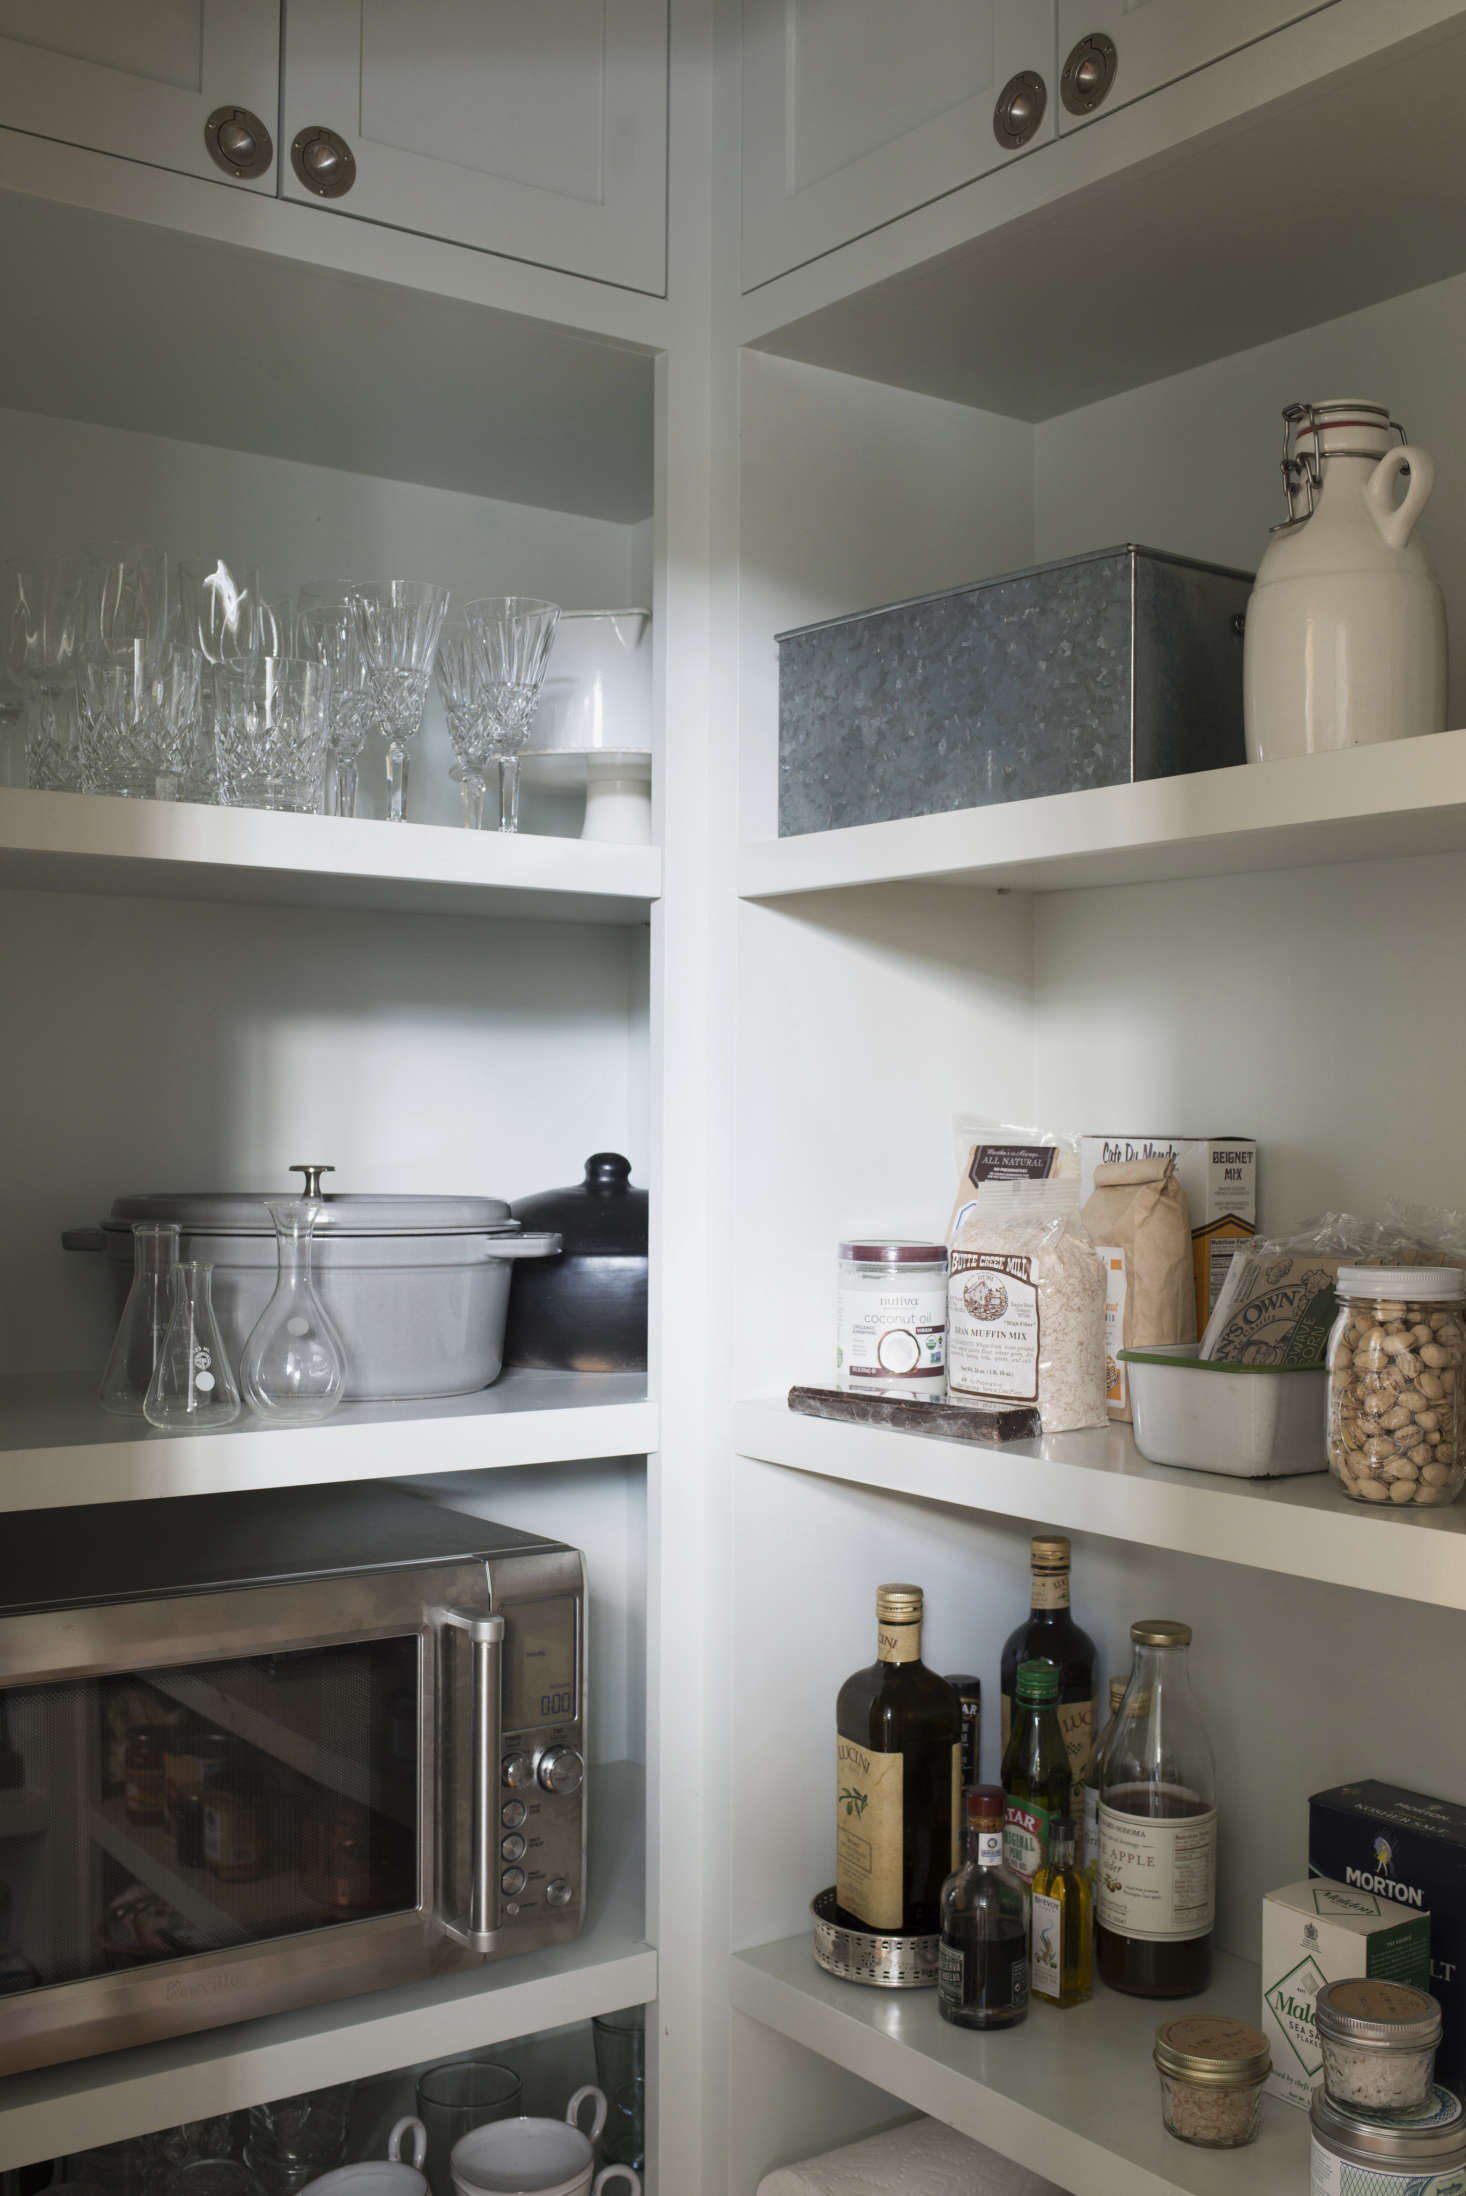 A freestanding microwave powered by a built-in outlet in a kitchen pantry designed by Ken Linsteadt in Mill Valley, California. Photograph by Andres Gonzalez fromKitchen of the Week: A New-Build Kitchen in Mill Valley, CA, the Six-Month Check-Up.